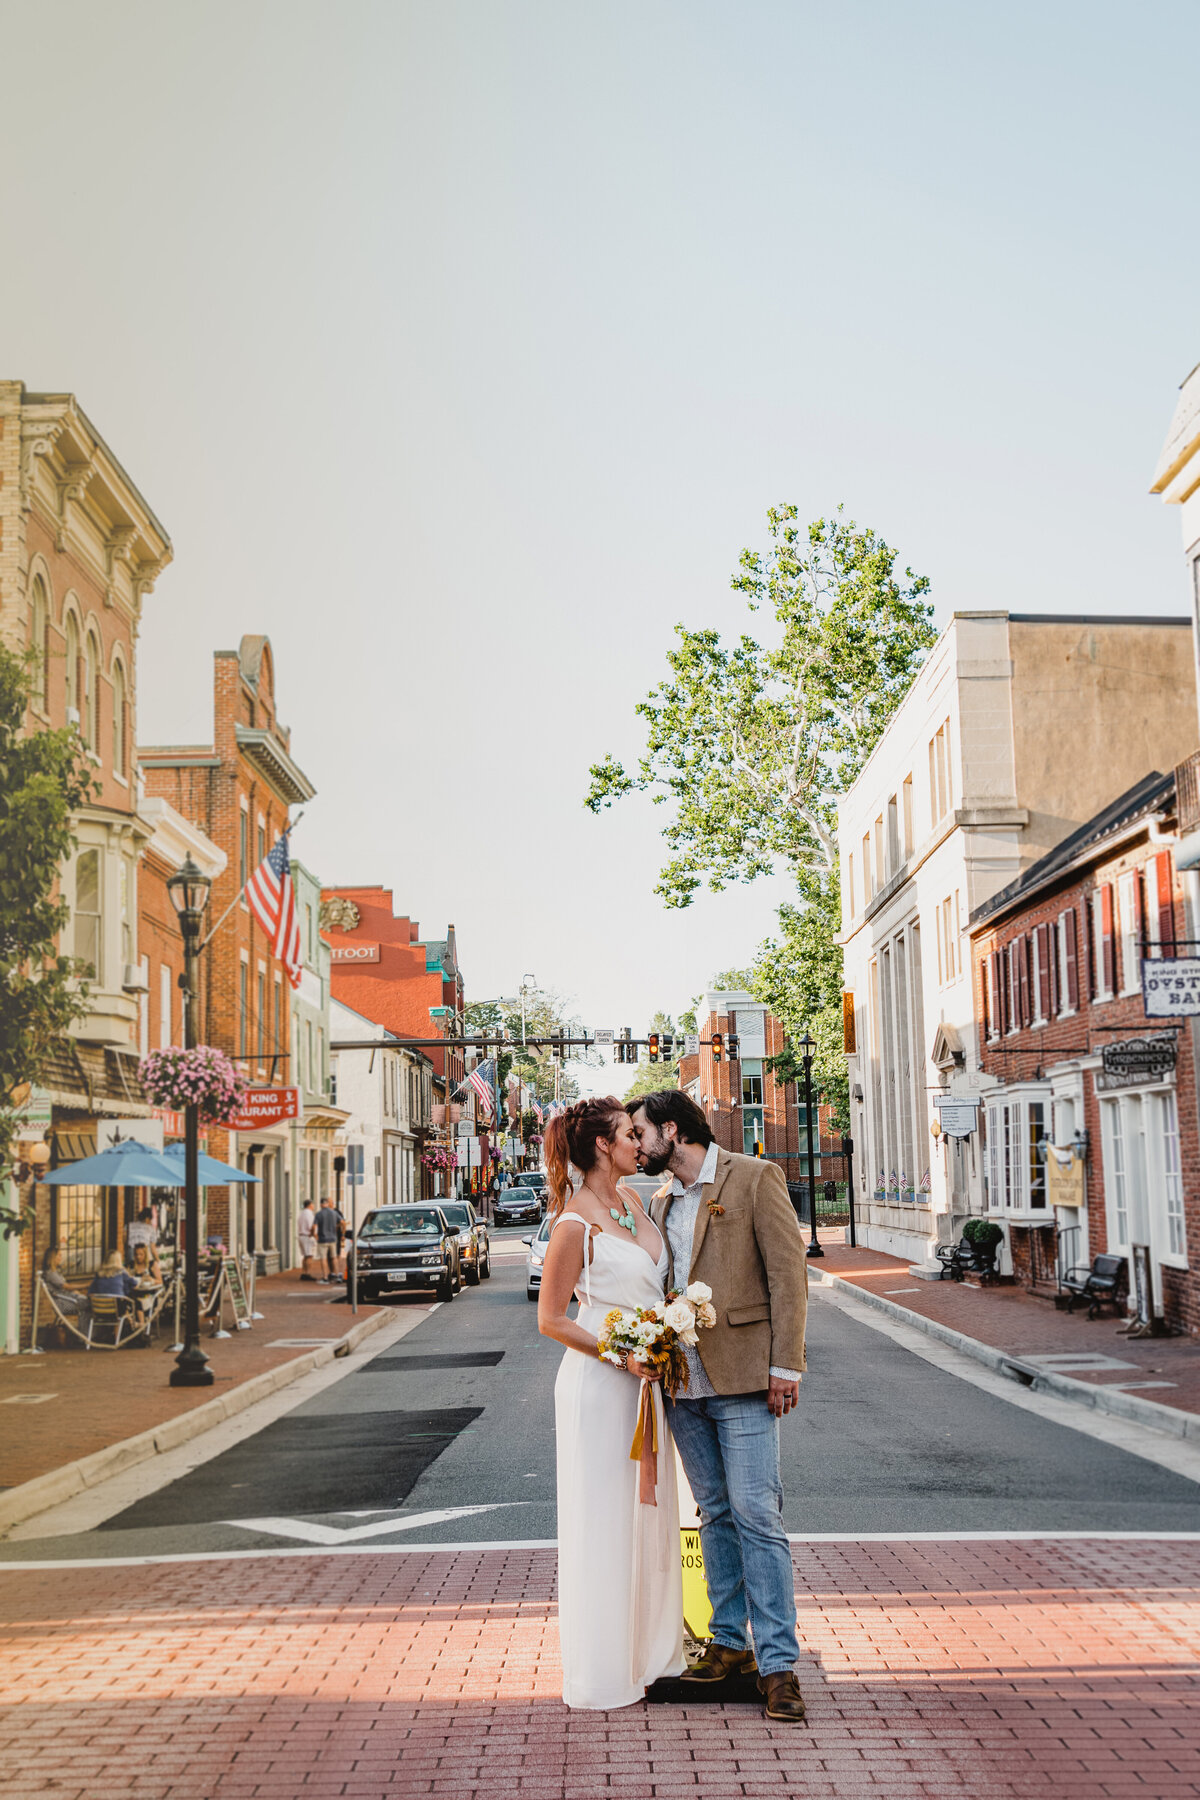 Weddings in Downtown Leesburg